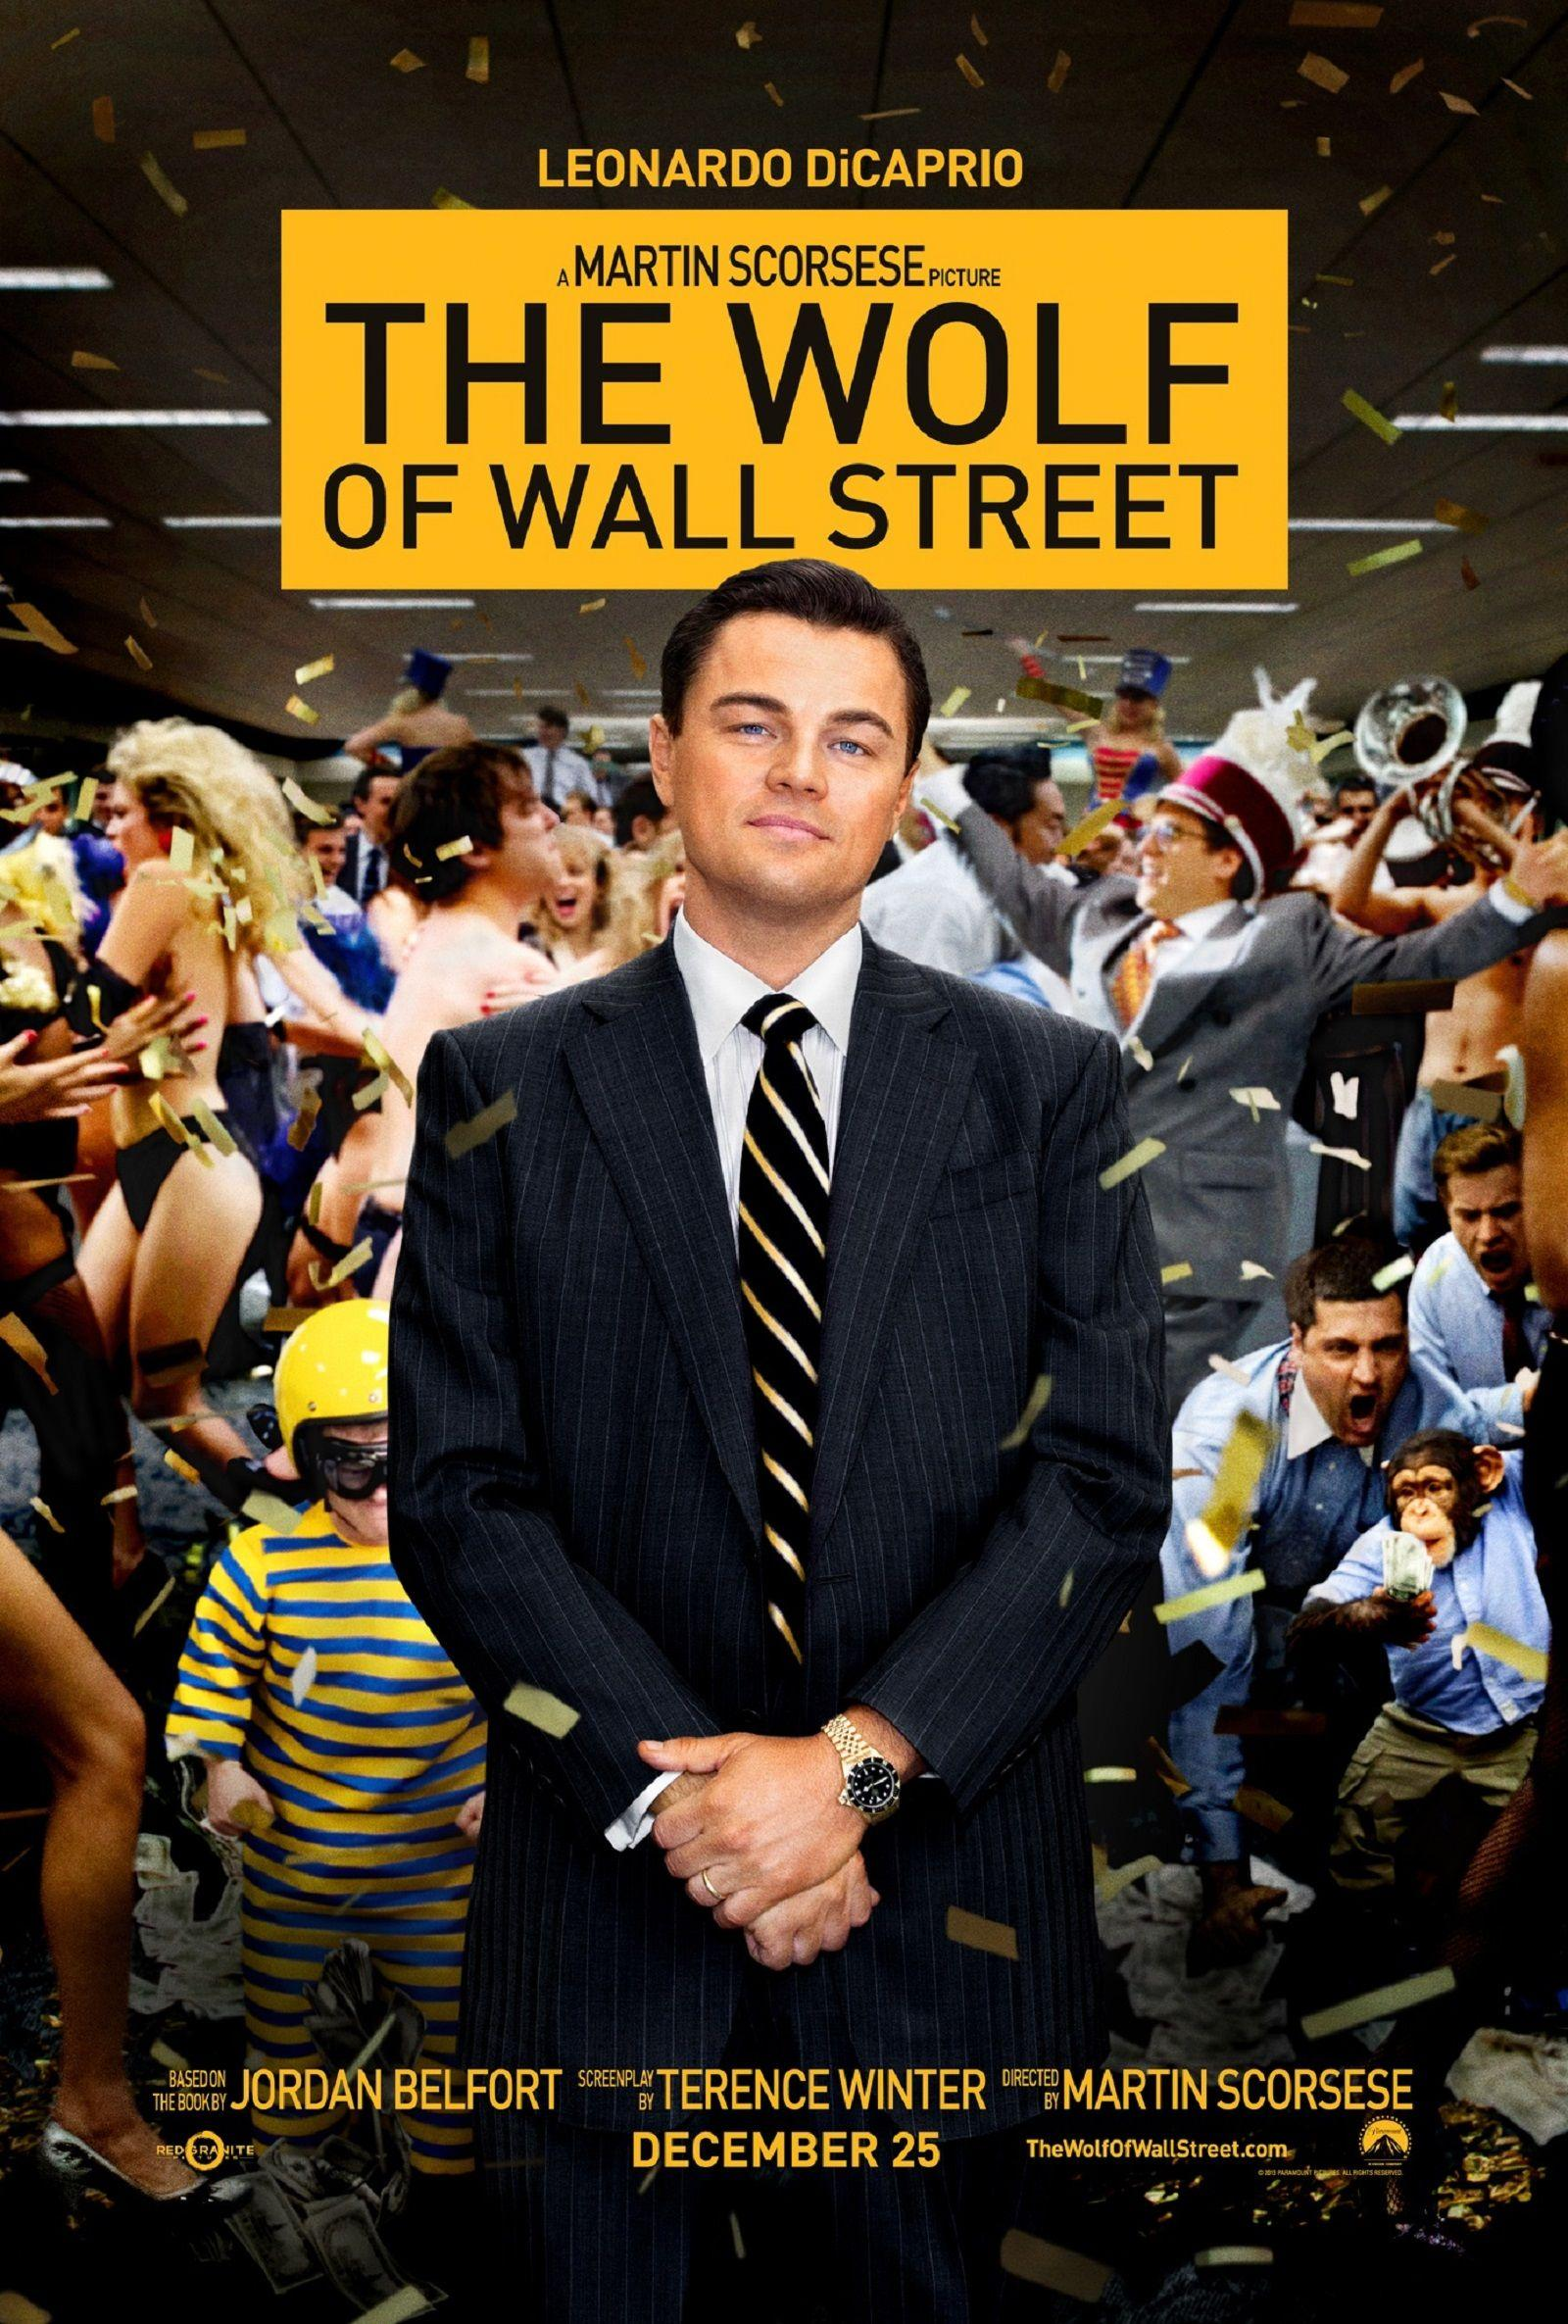 The Wolf of Wall Street: Controversy and Box Office success